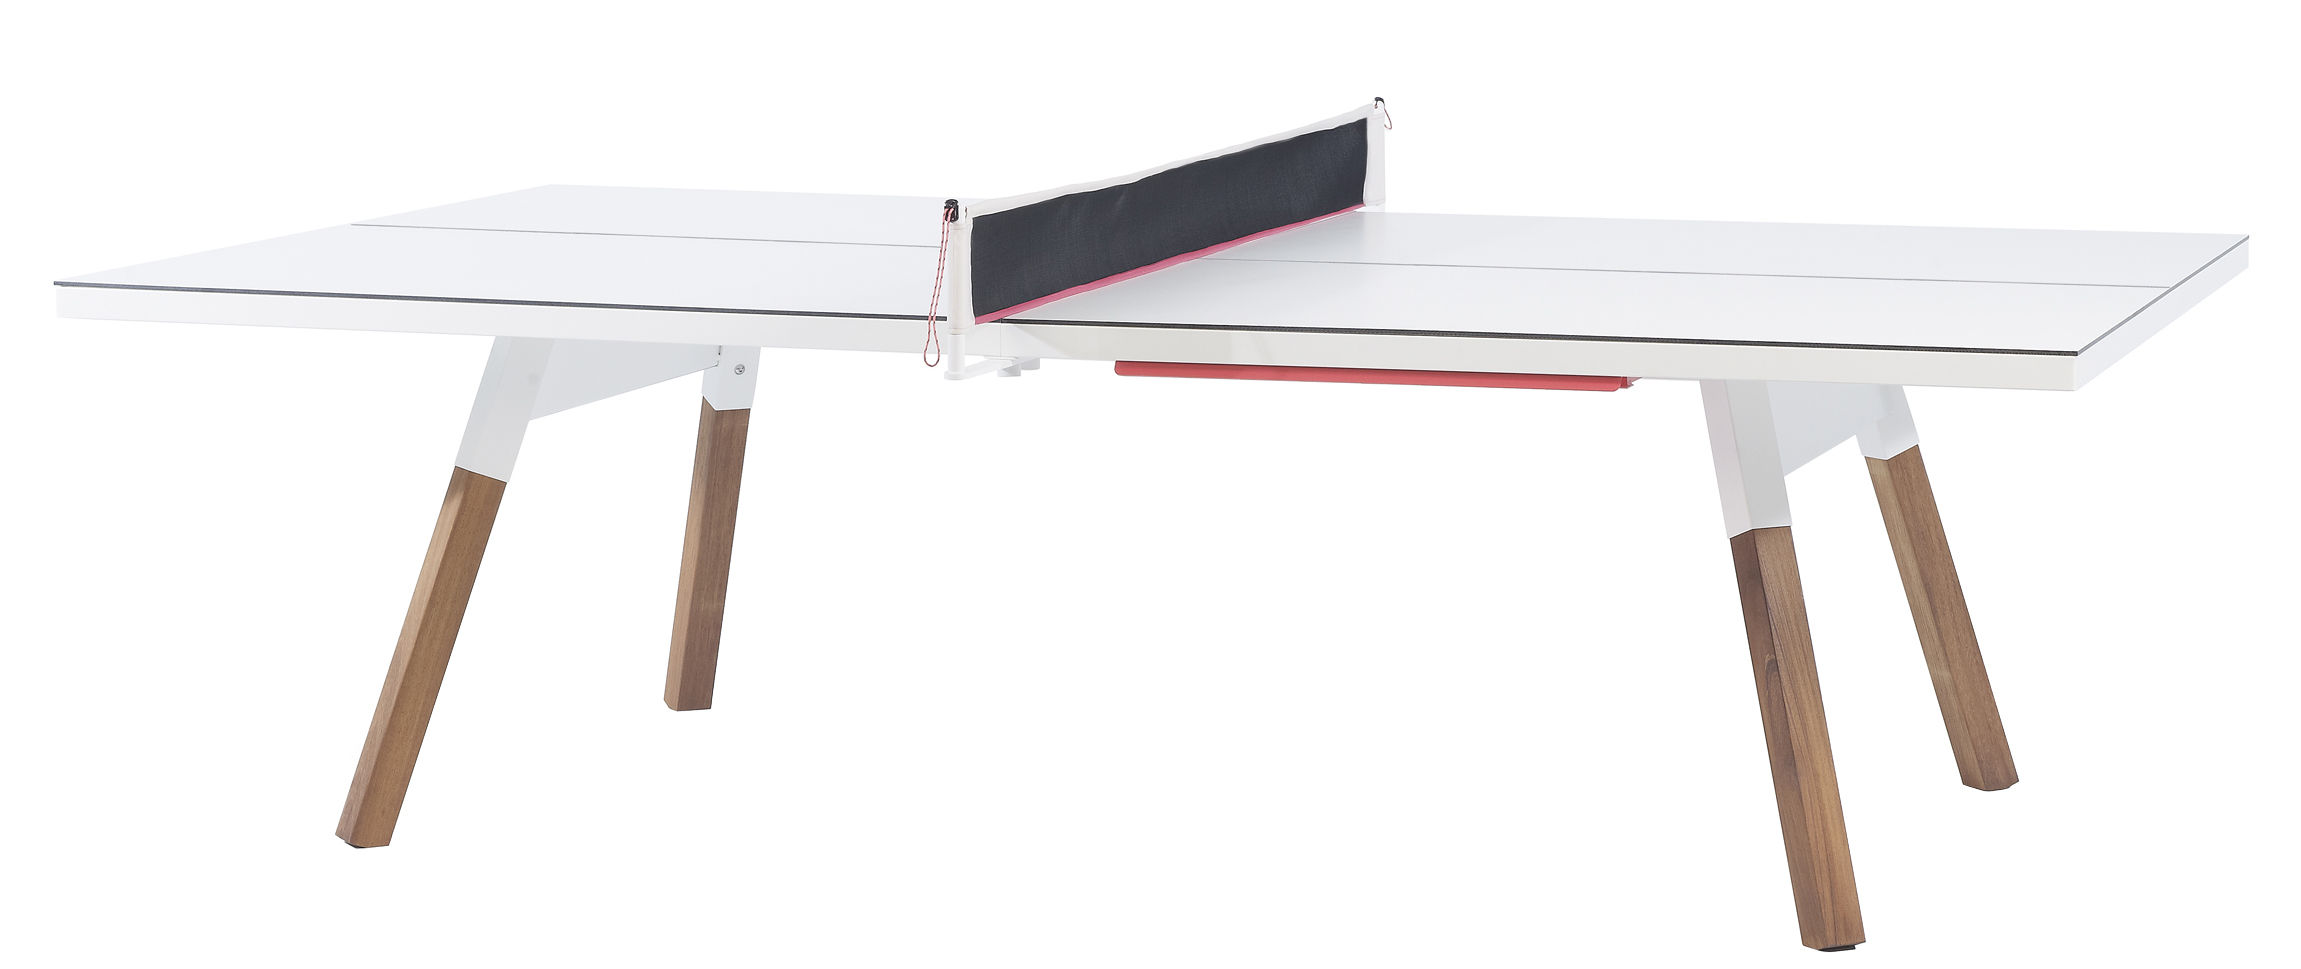 Outdoor - Garden Tables - Y&M Table - L 274 cm / Ping pong & dining table by RS BARCELONA - White / Wood legs - HPL, Iroko wood, Steel